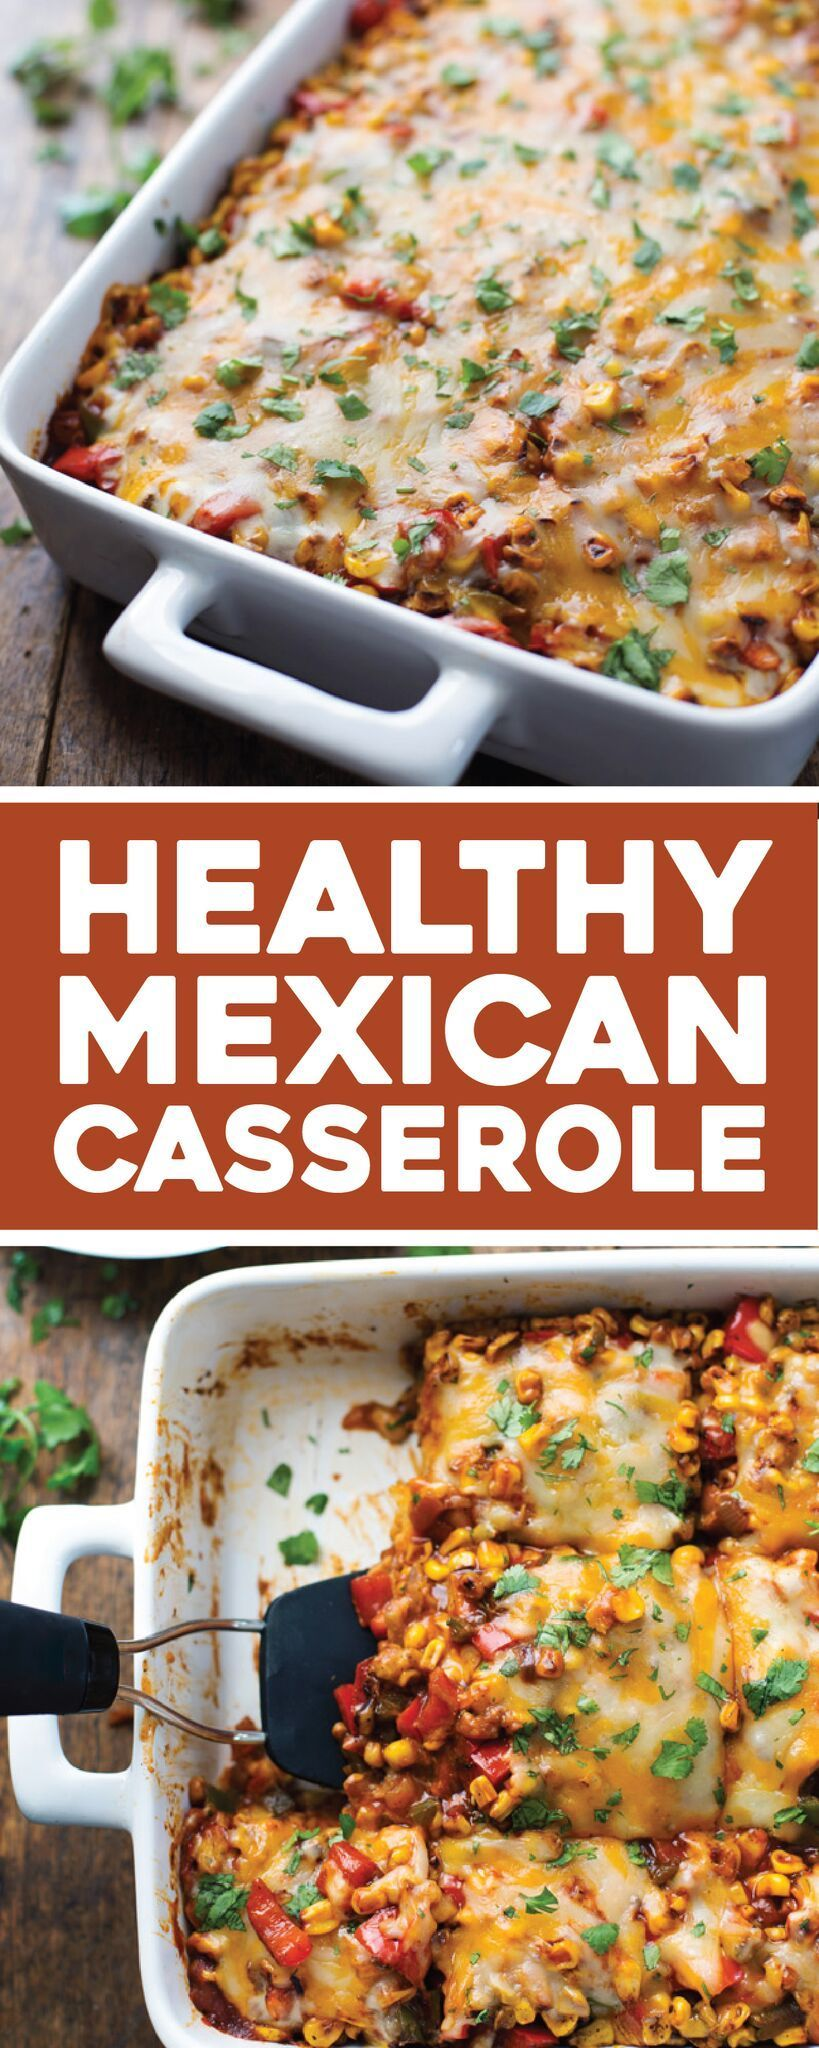 Healthy Mexican Casserole with Roasted Corn and Peppers images